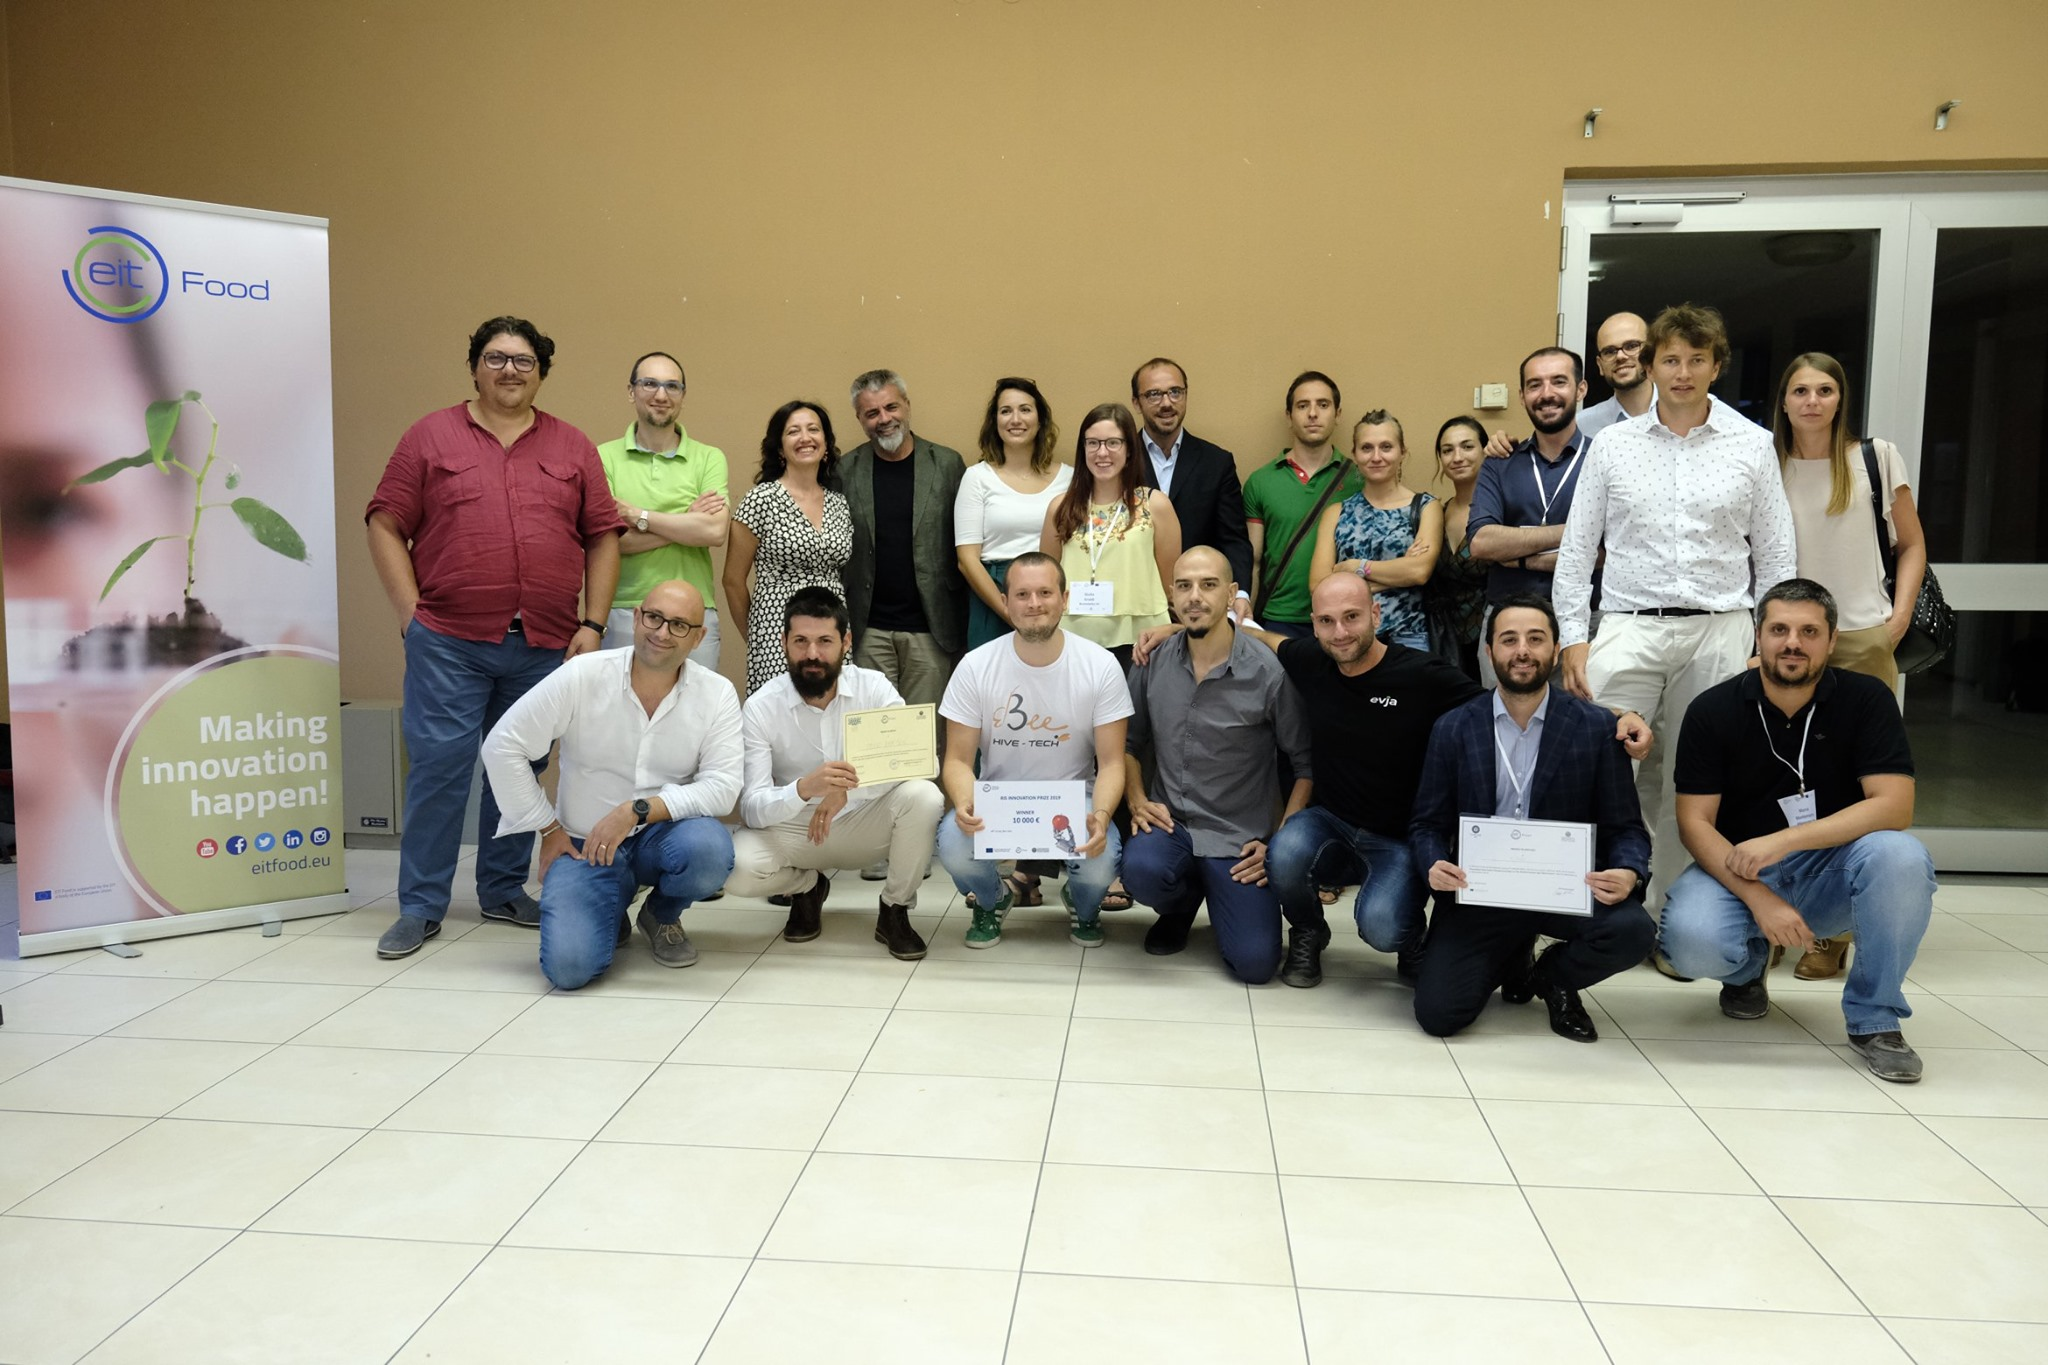 3bee and EvJa, the winning startups in the EIT Food Demo Day in Bari